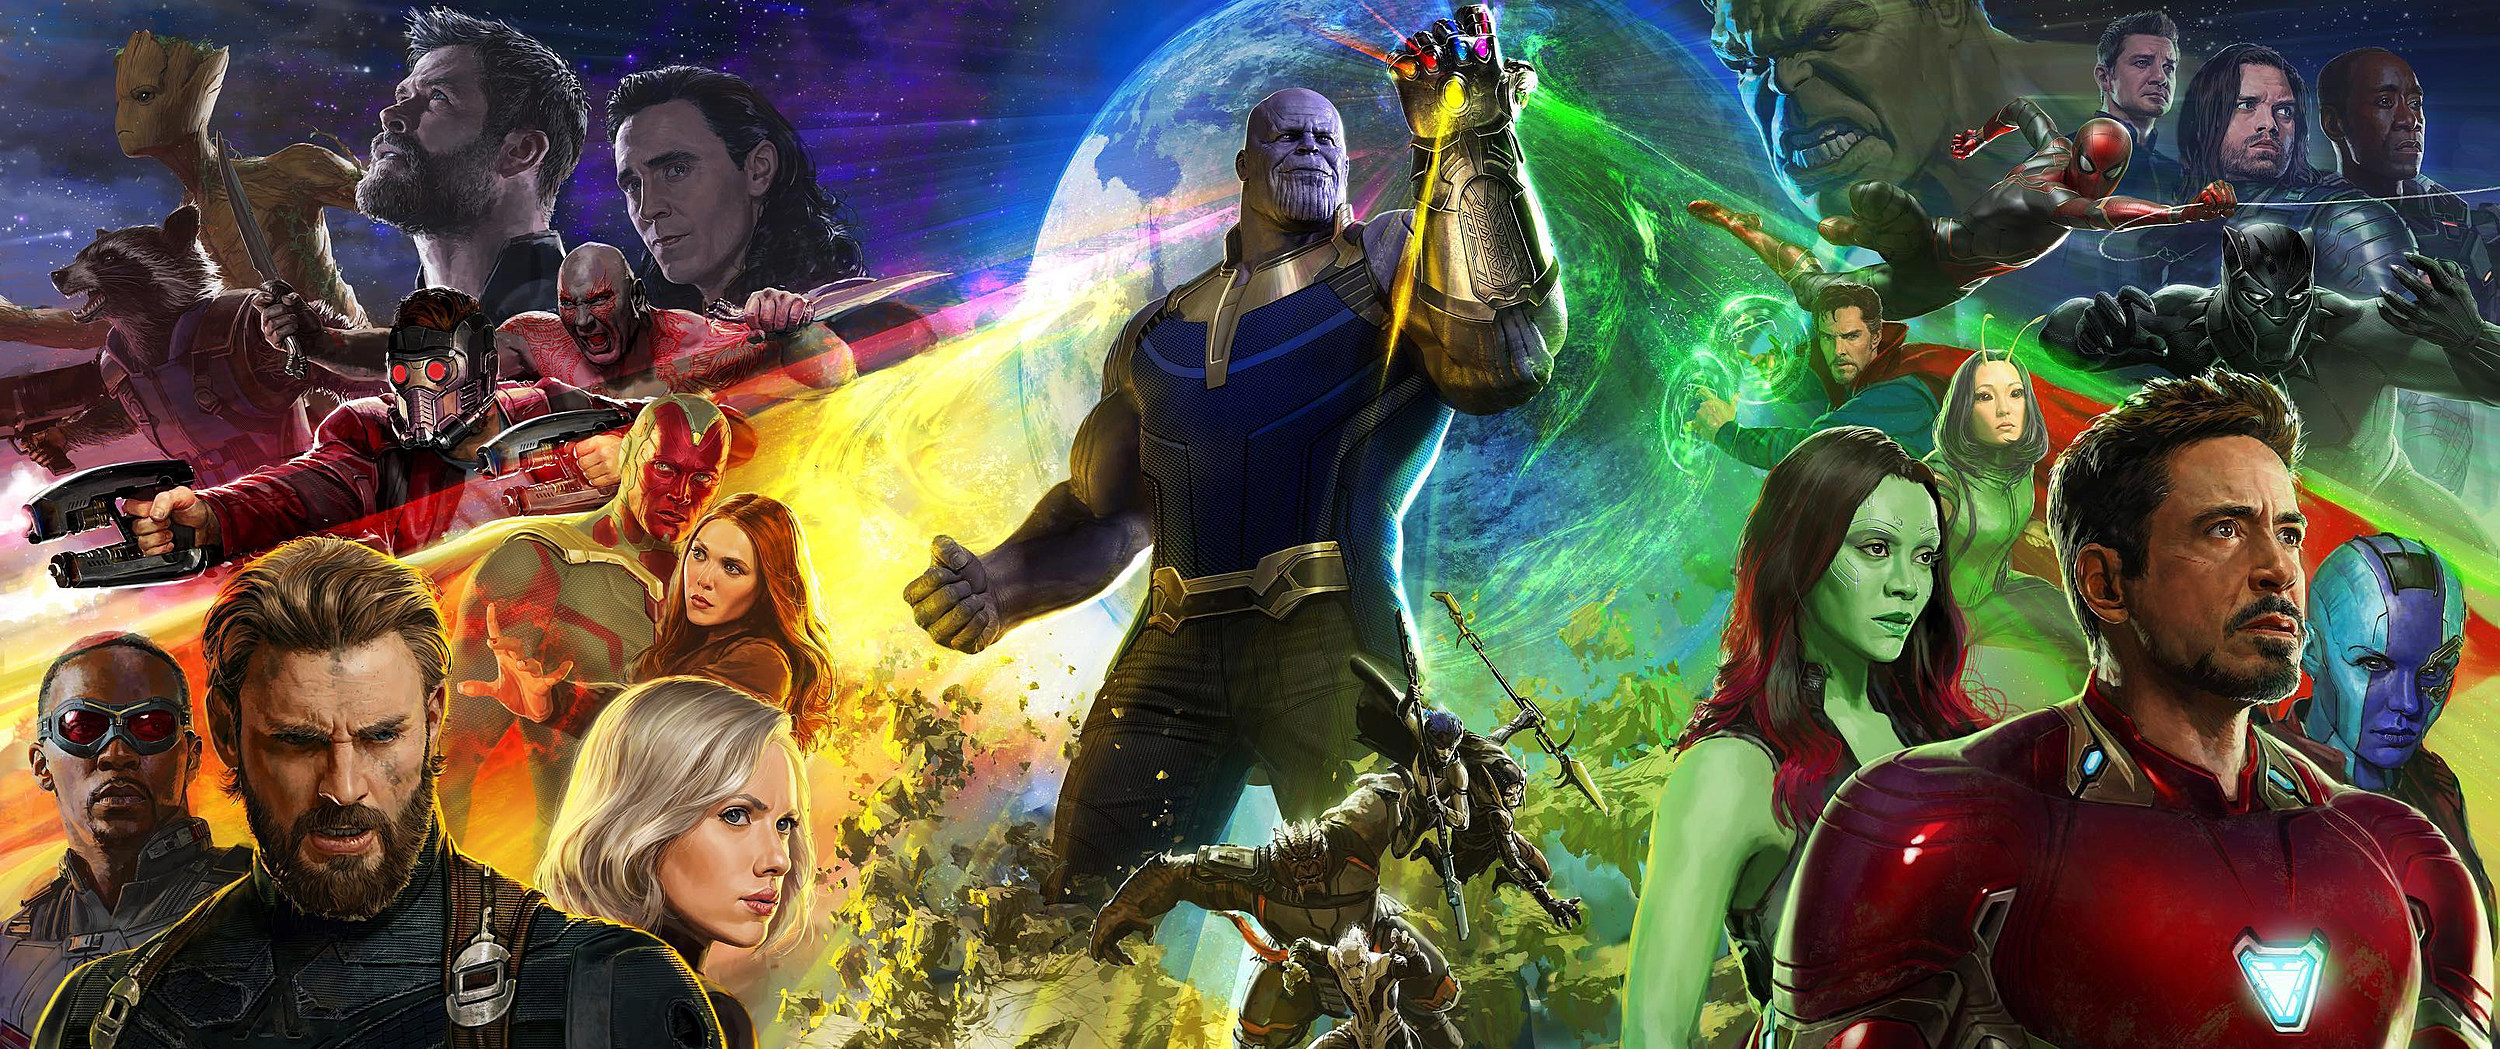 Behold the Massive 'Avengers: Infinity War' Comic-Con Poster